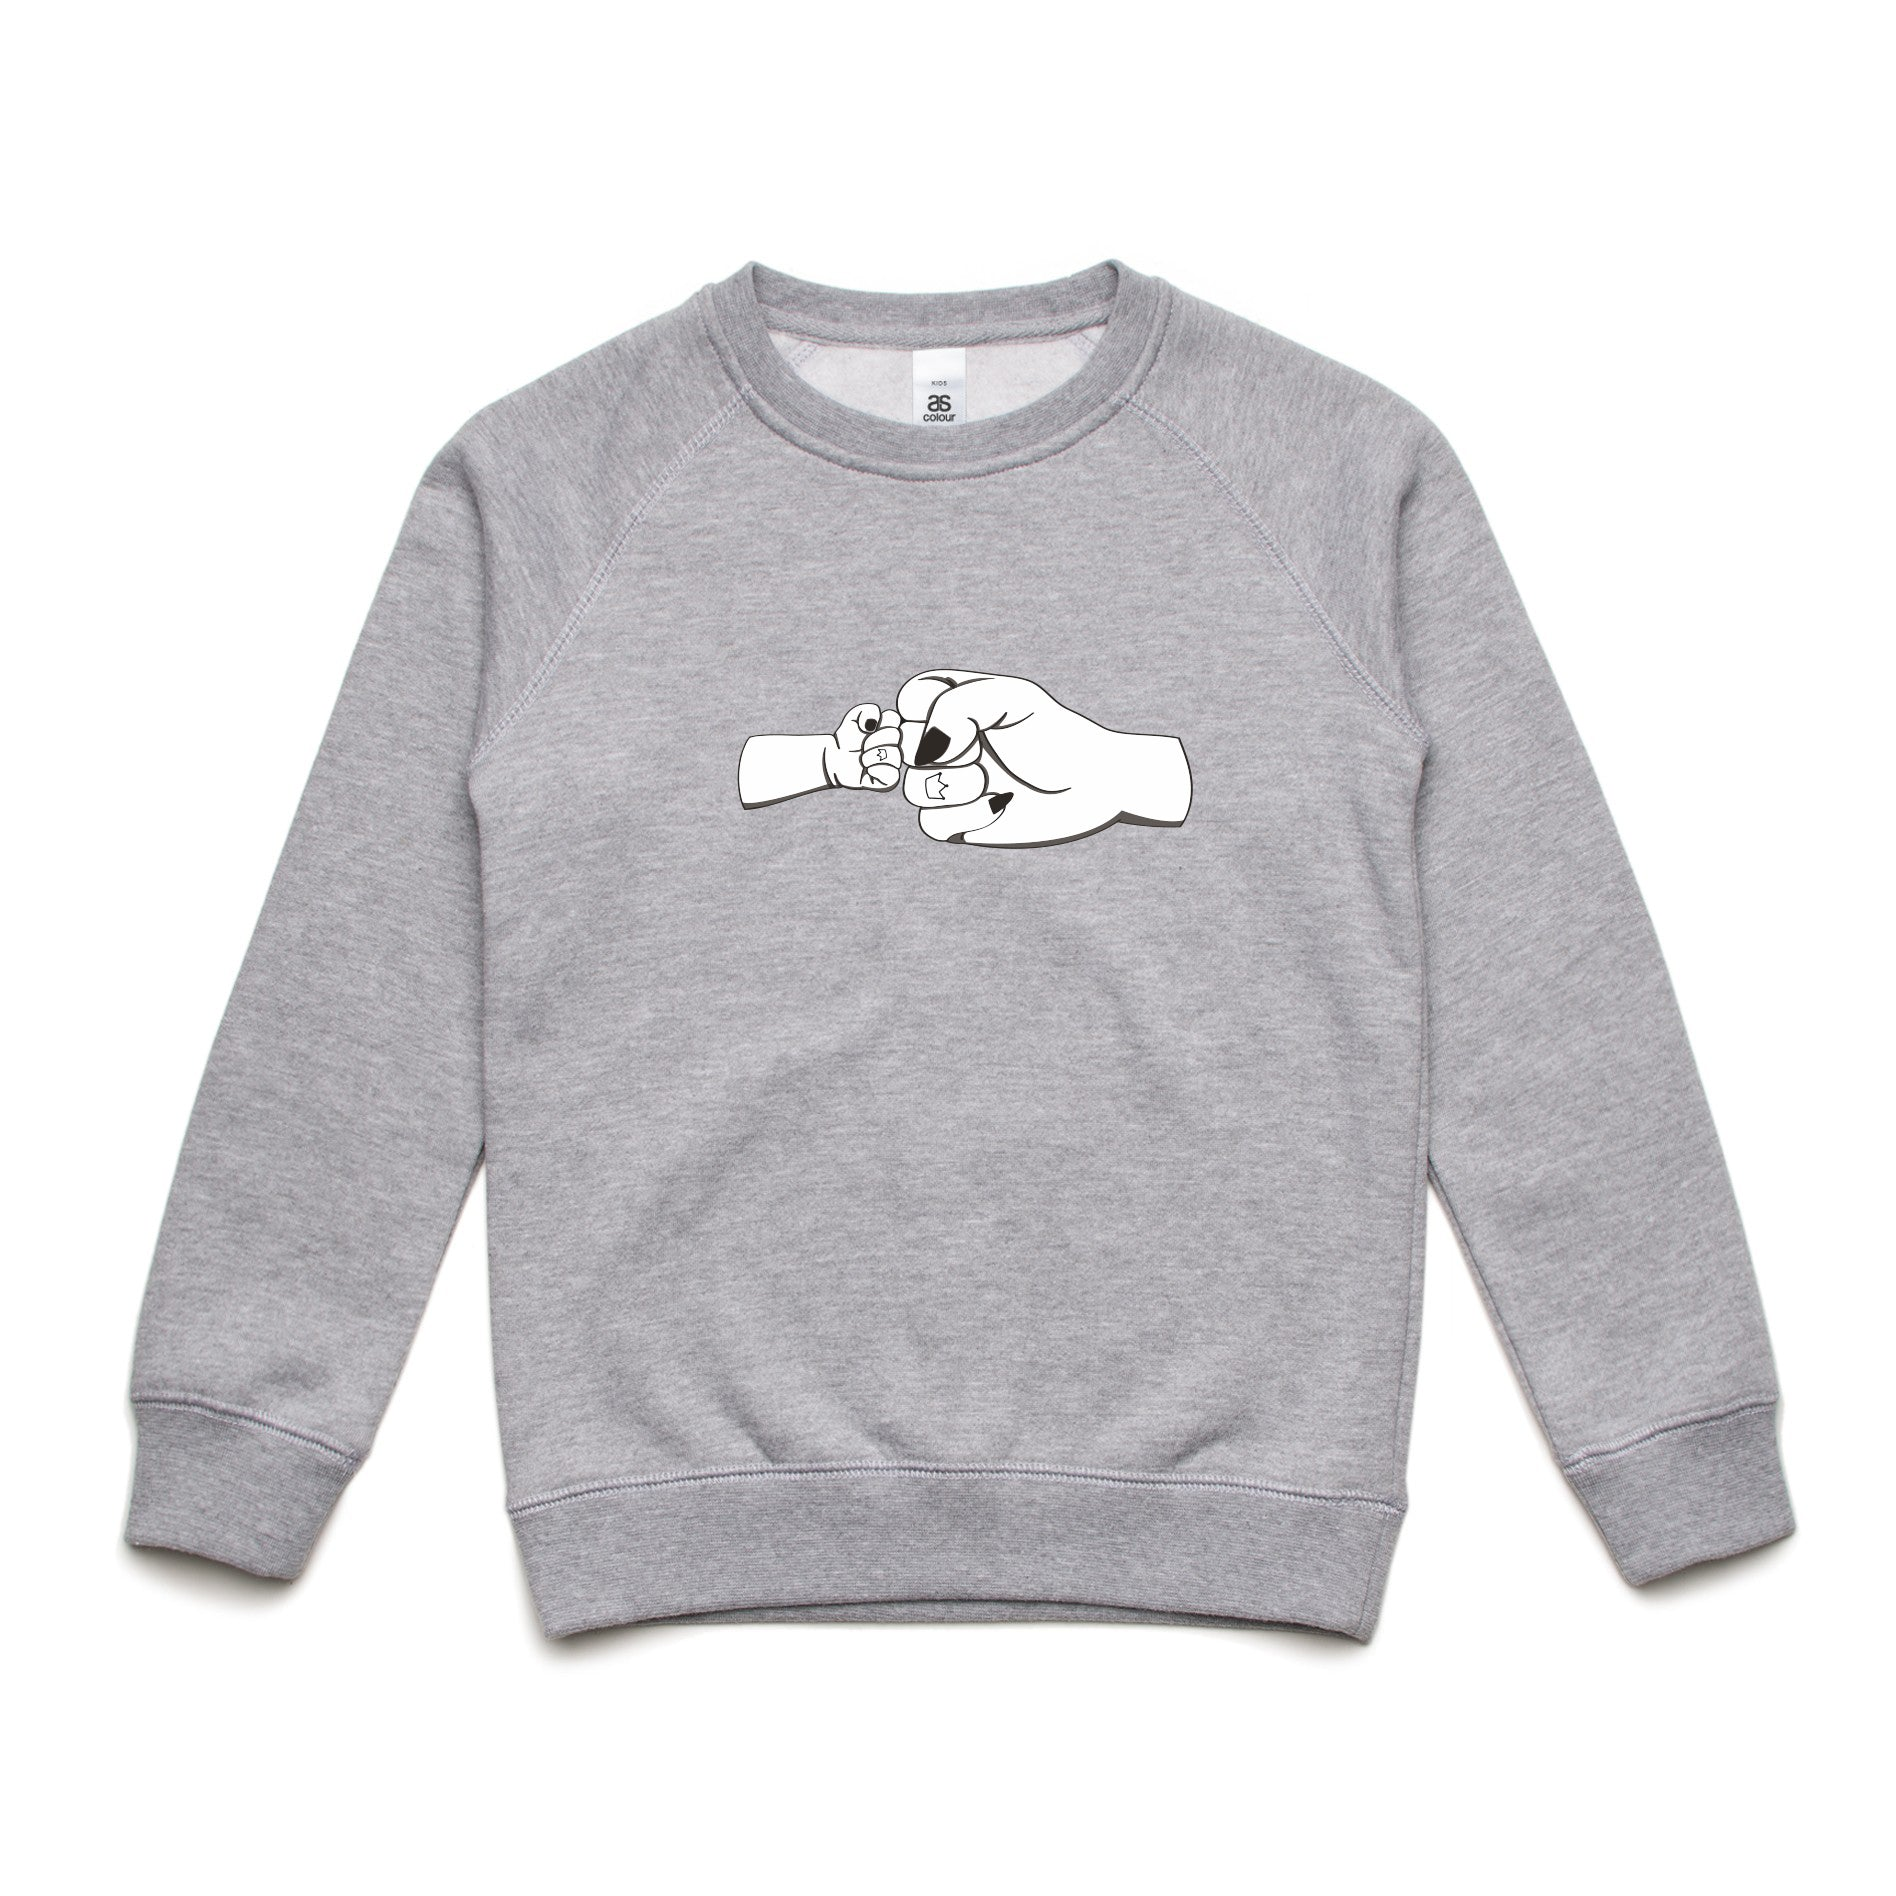 'The Pump' Kids Jumper